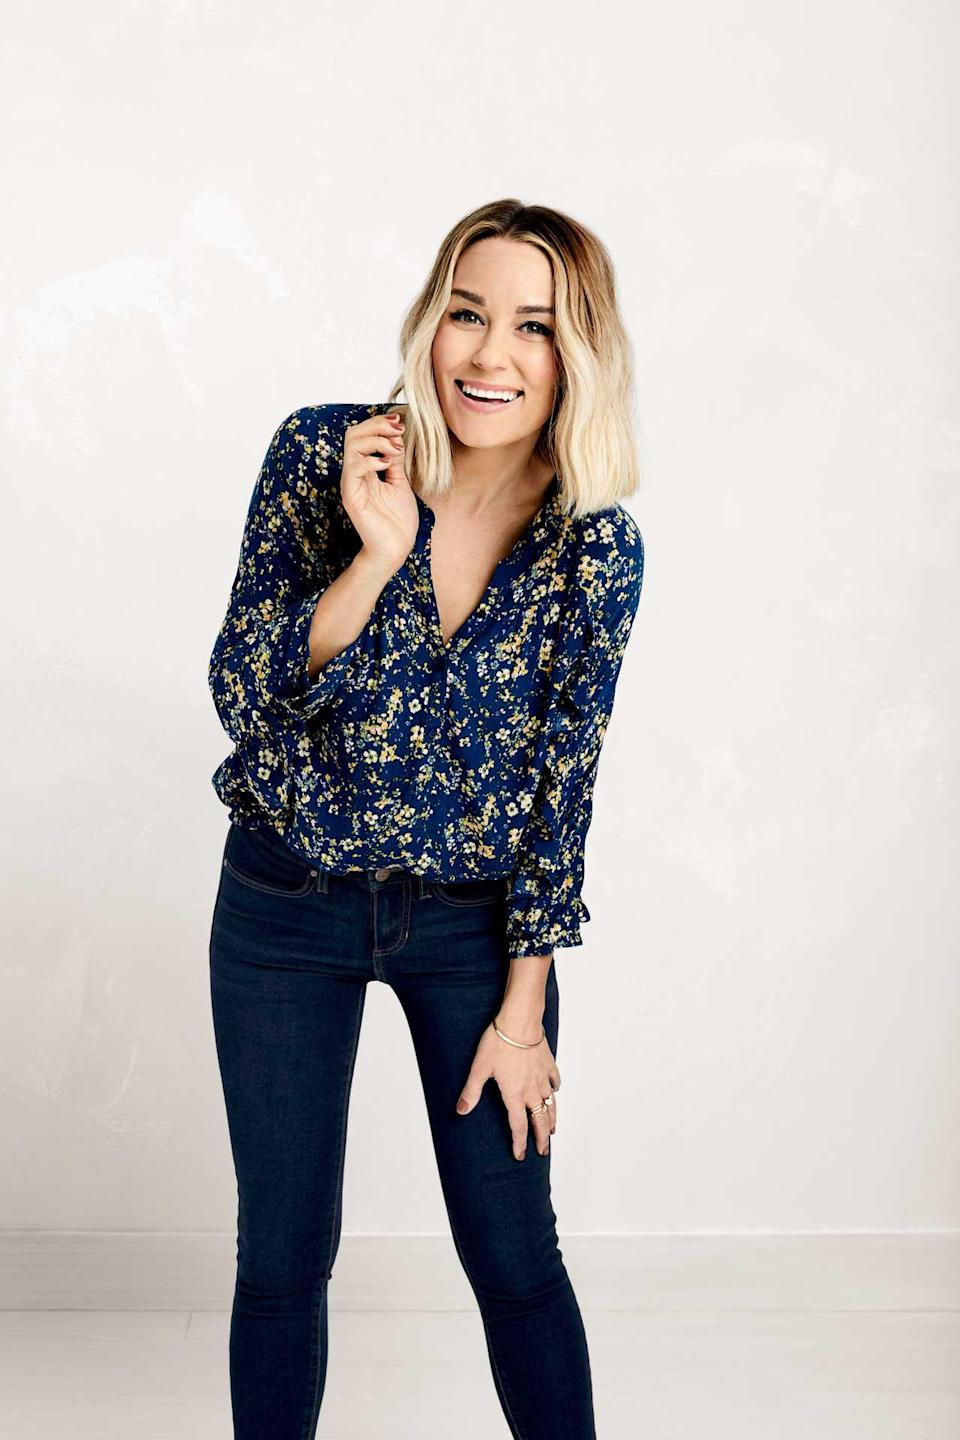 Lauren Conrad in a floral blouse and dark denim jeans from the LC Lauren Conrad collection with Kohl's. (Photo: Courtesy of LC Lauren Conrad/Kohl's)